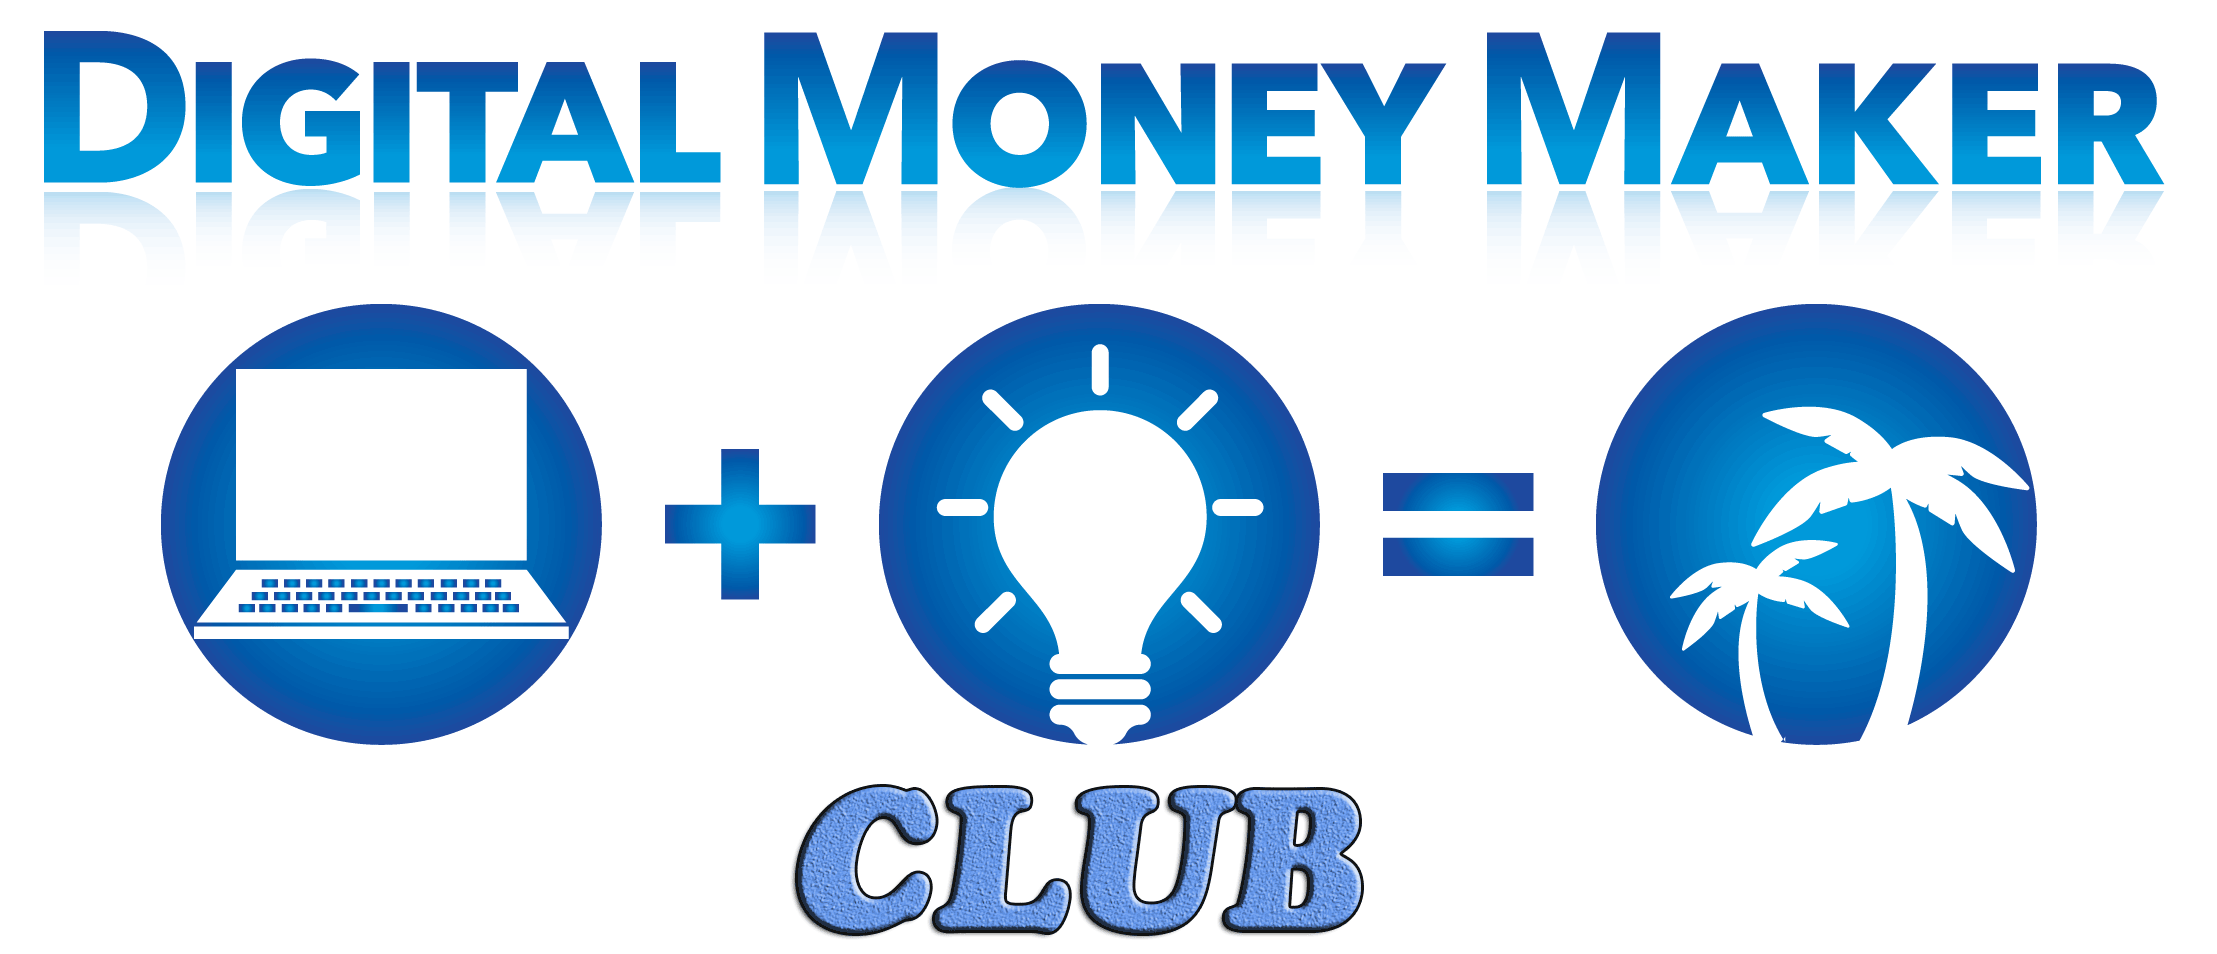 digital money maker club, digital money maker club abzocke, digital money maker club bewertungen, digital money maker club test, digital money maker club meinungen, digital money maker club erfahrungen, digital money maker club kritik, digital money maker club login, digital money maker club series, digital money maker club forum, digital money maker club erfahrung, digital money maker club login finden, digital money maker club Erfahrungsbericht, digital money maker club Review, DMMC, DMMC Test, DMMC Review, DMMC Erfahrungen, digital money maker, Online Geld verdienen, Affiliate Marketing, Online Marketig, E-Mail Marketing, Gunnar Kessler, Sofortgeld Methoden